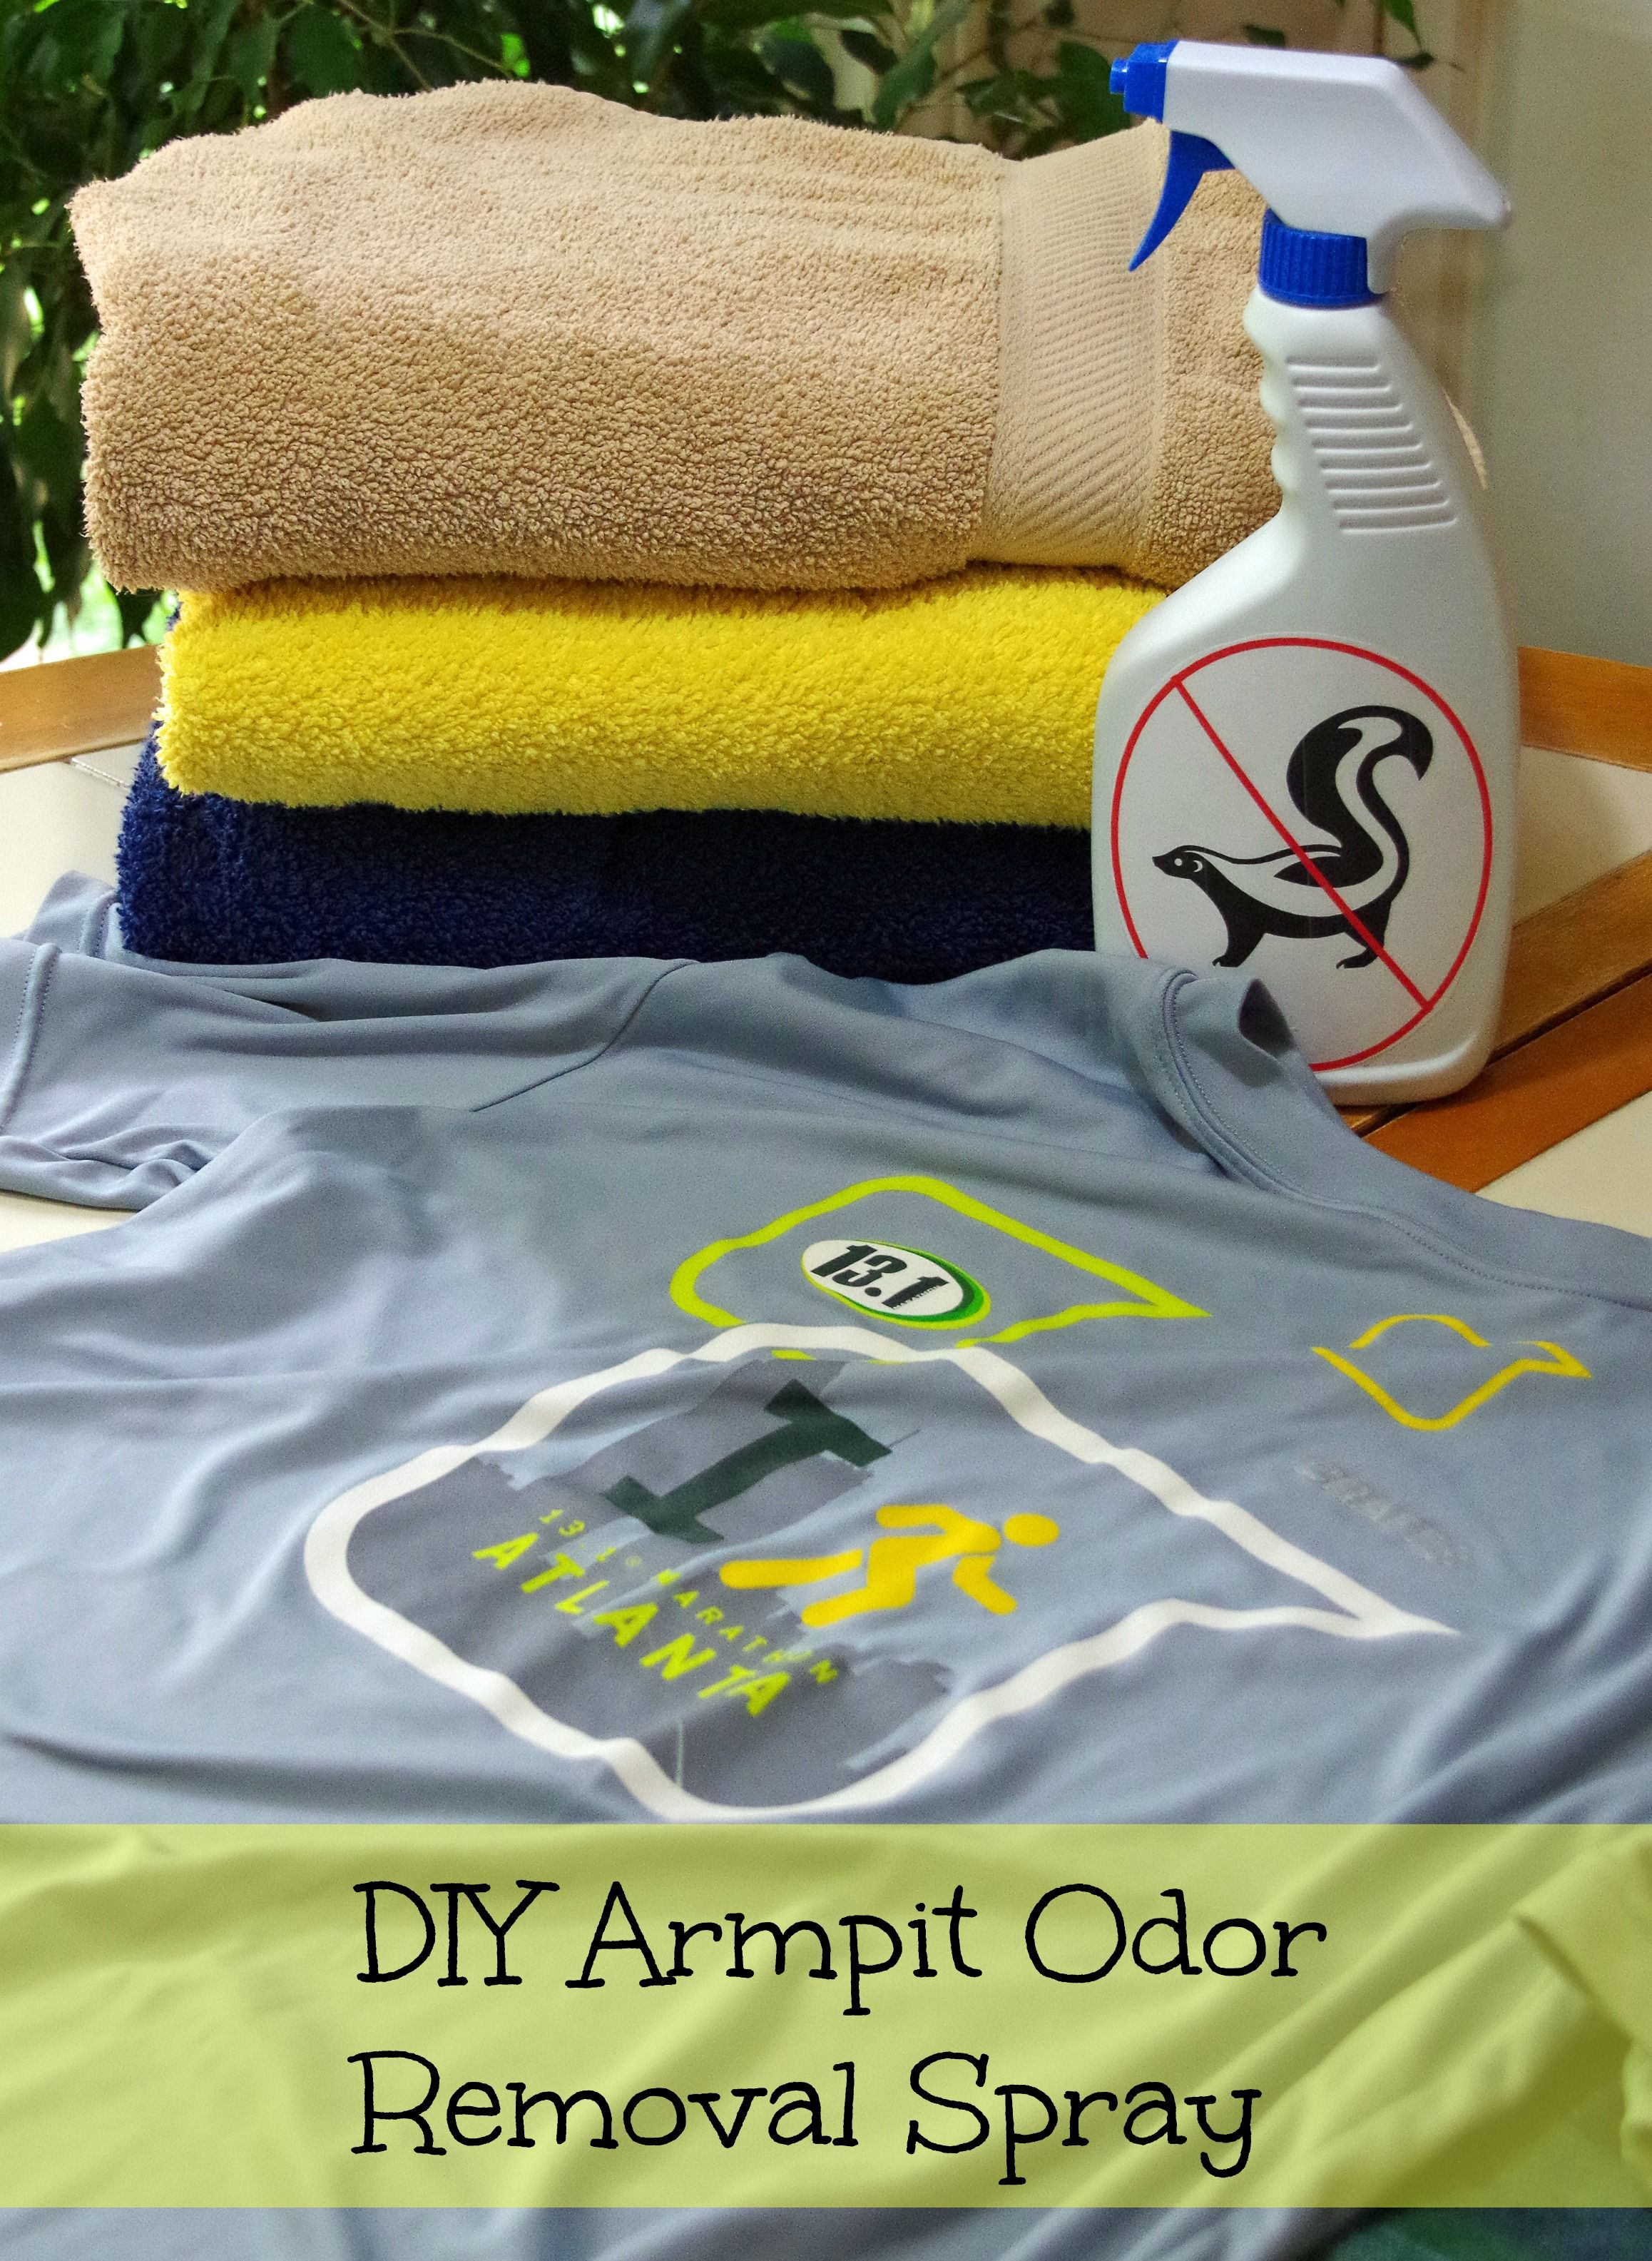 How To Remove Armpit Odor From Shirts Armpit Odor How To Remove